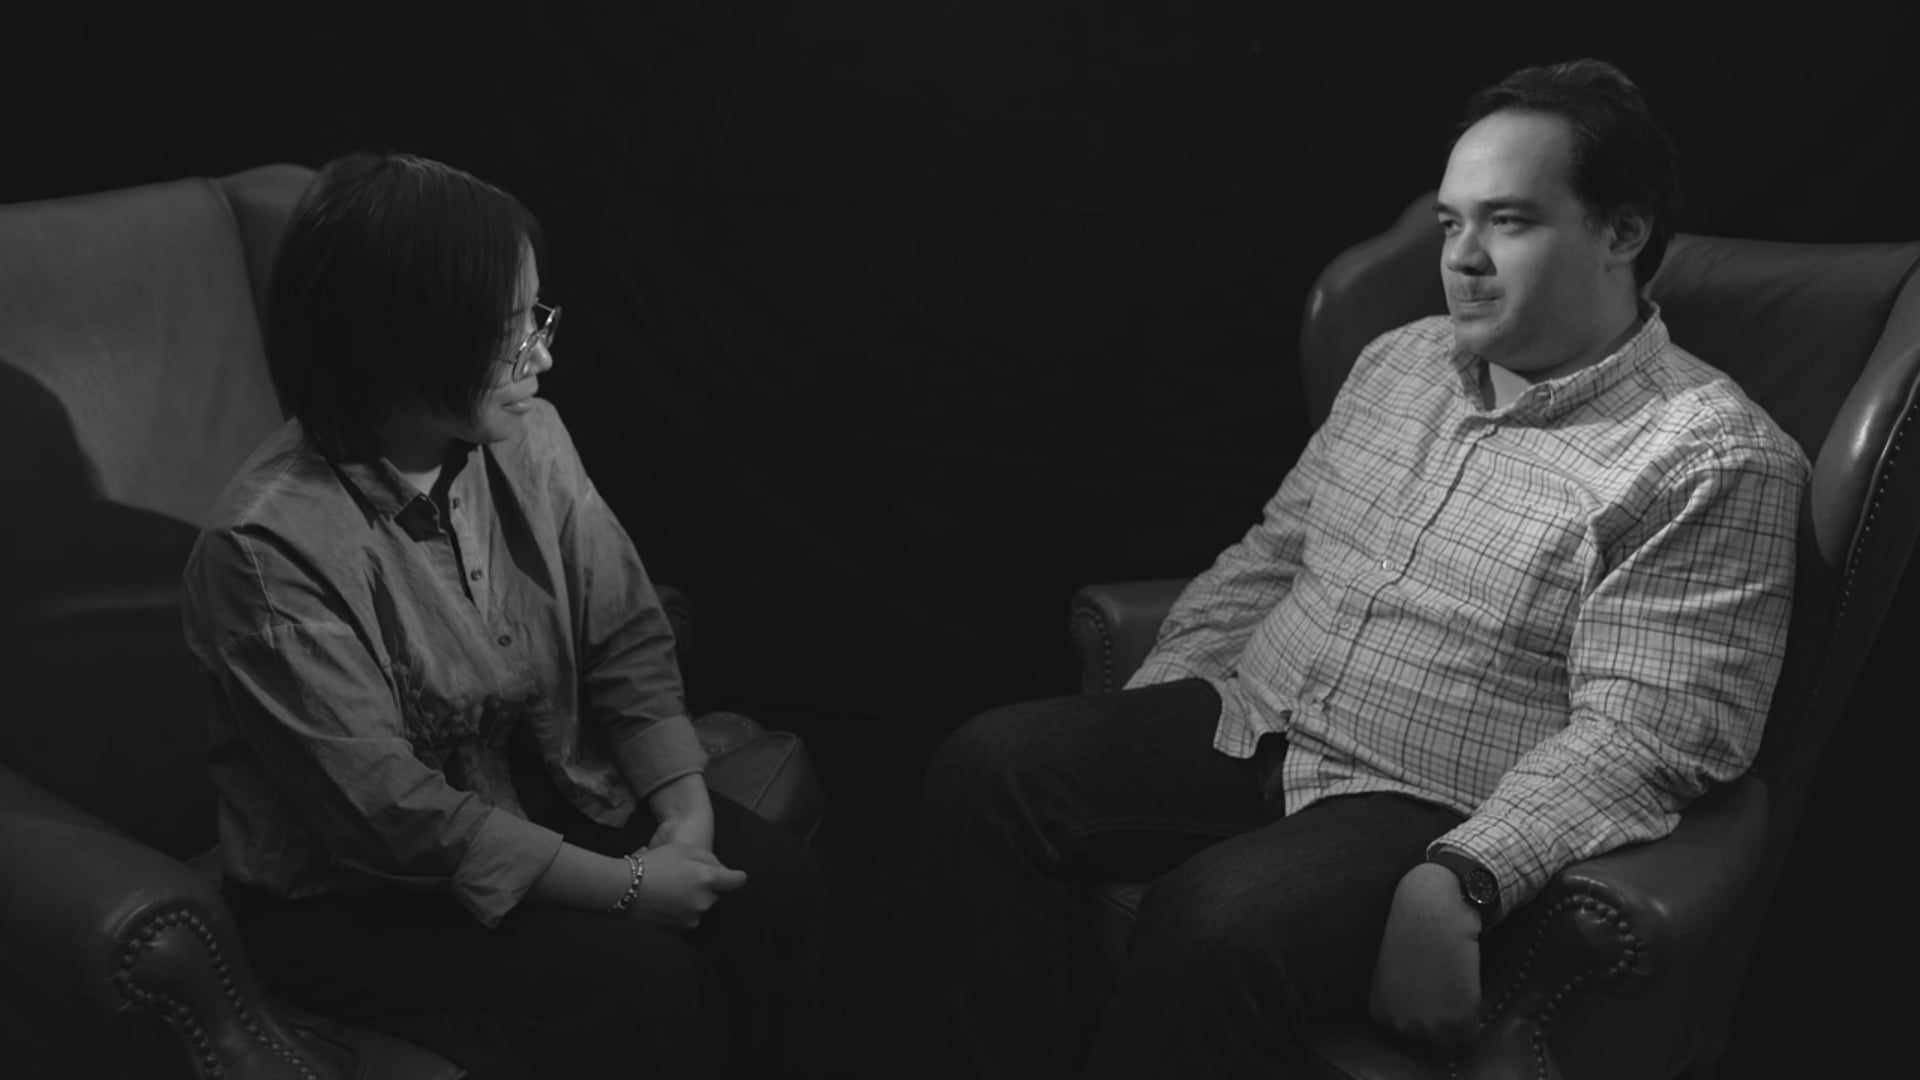 An Interview of Three People